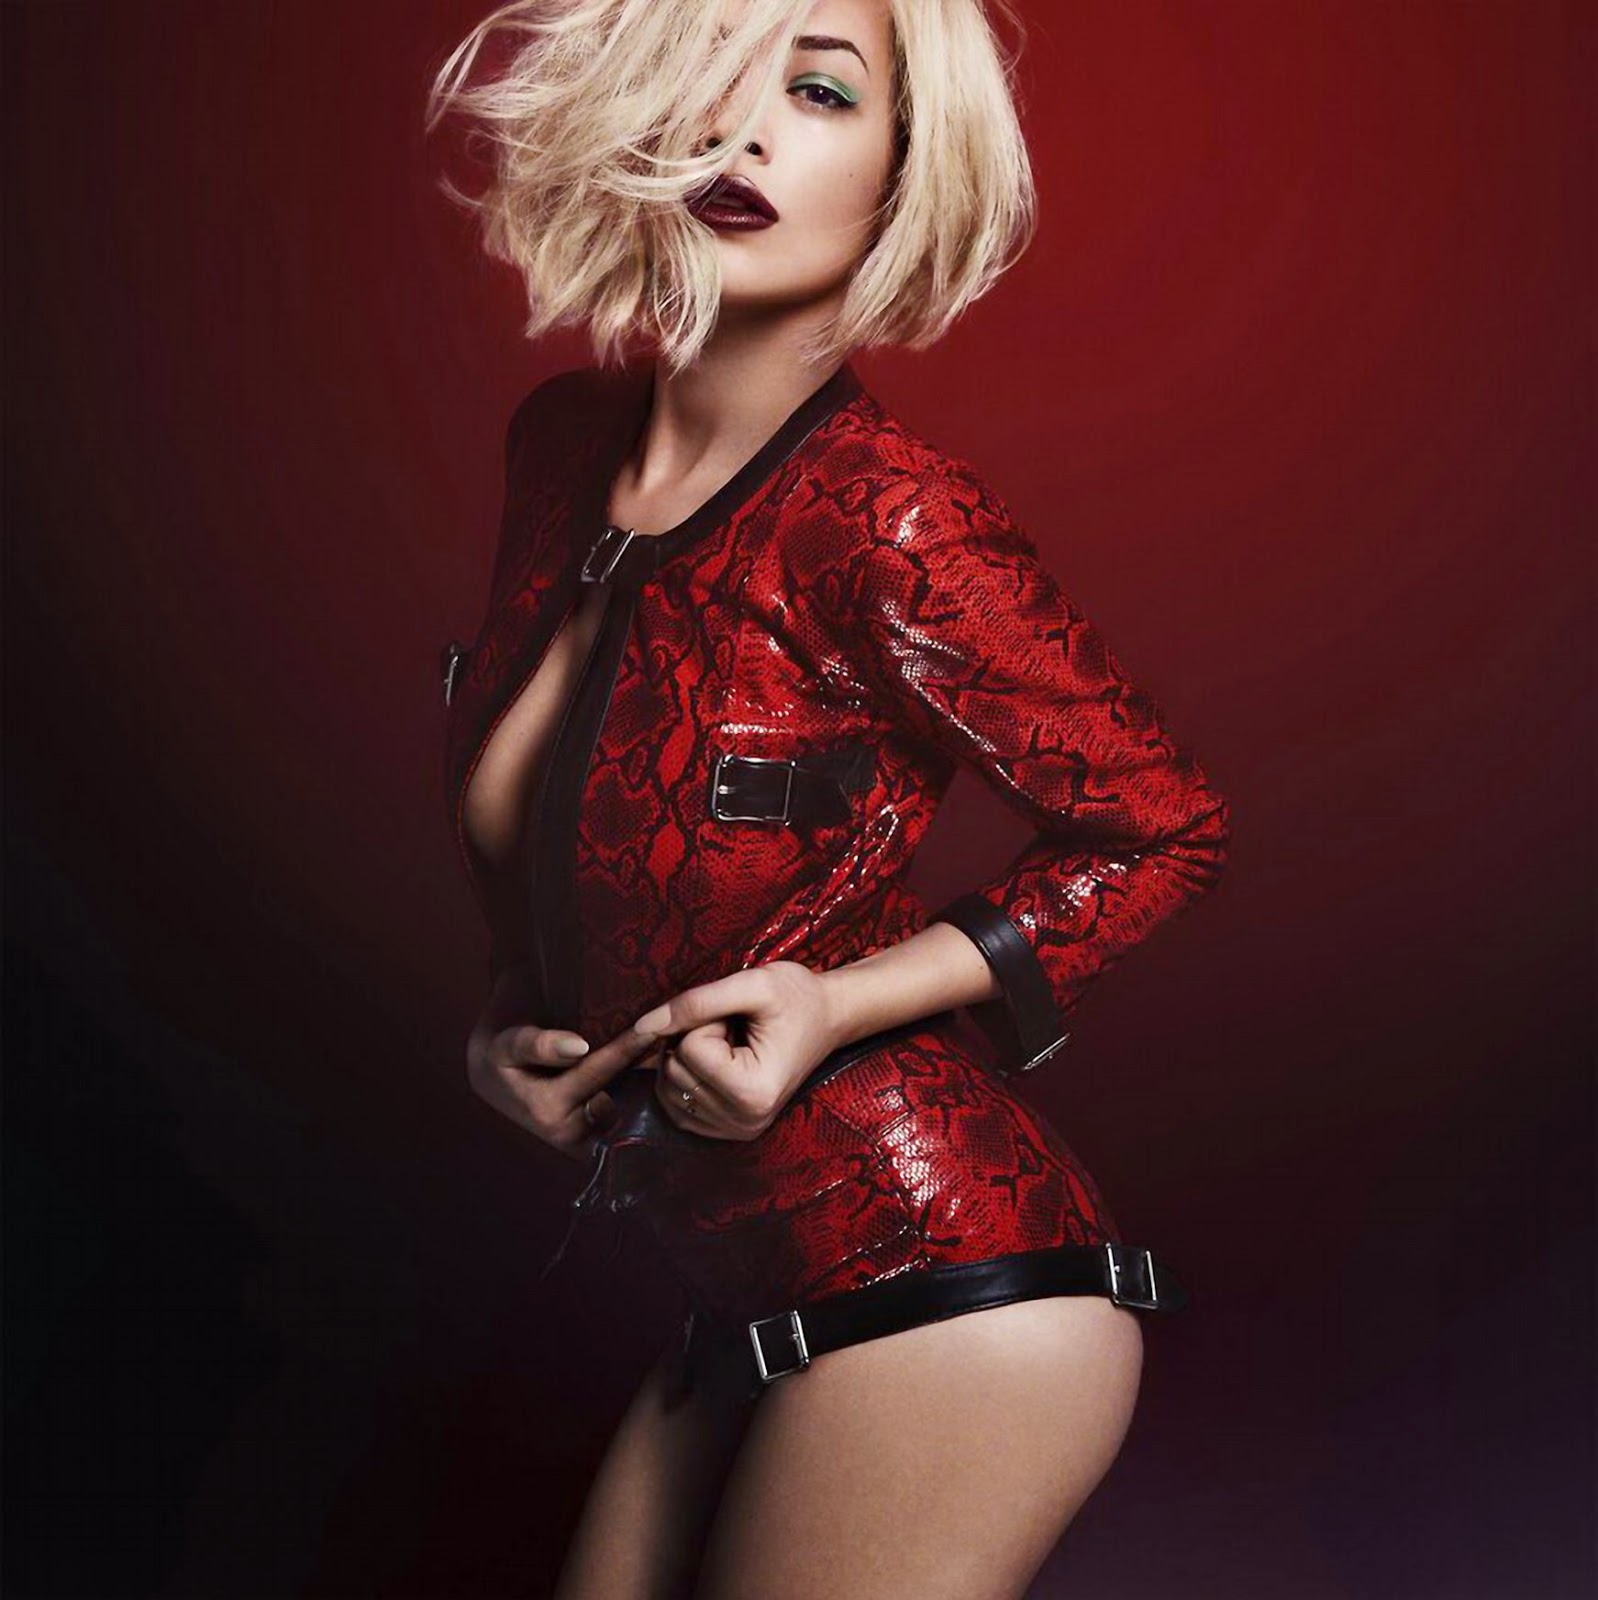 "Foto HQ sin marcas: Portada del nuevo sencillo de Rita Ora ""I will never let you down"""